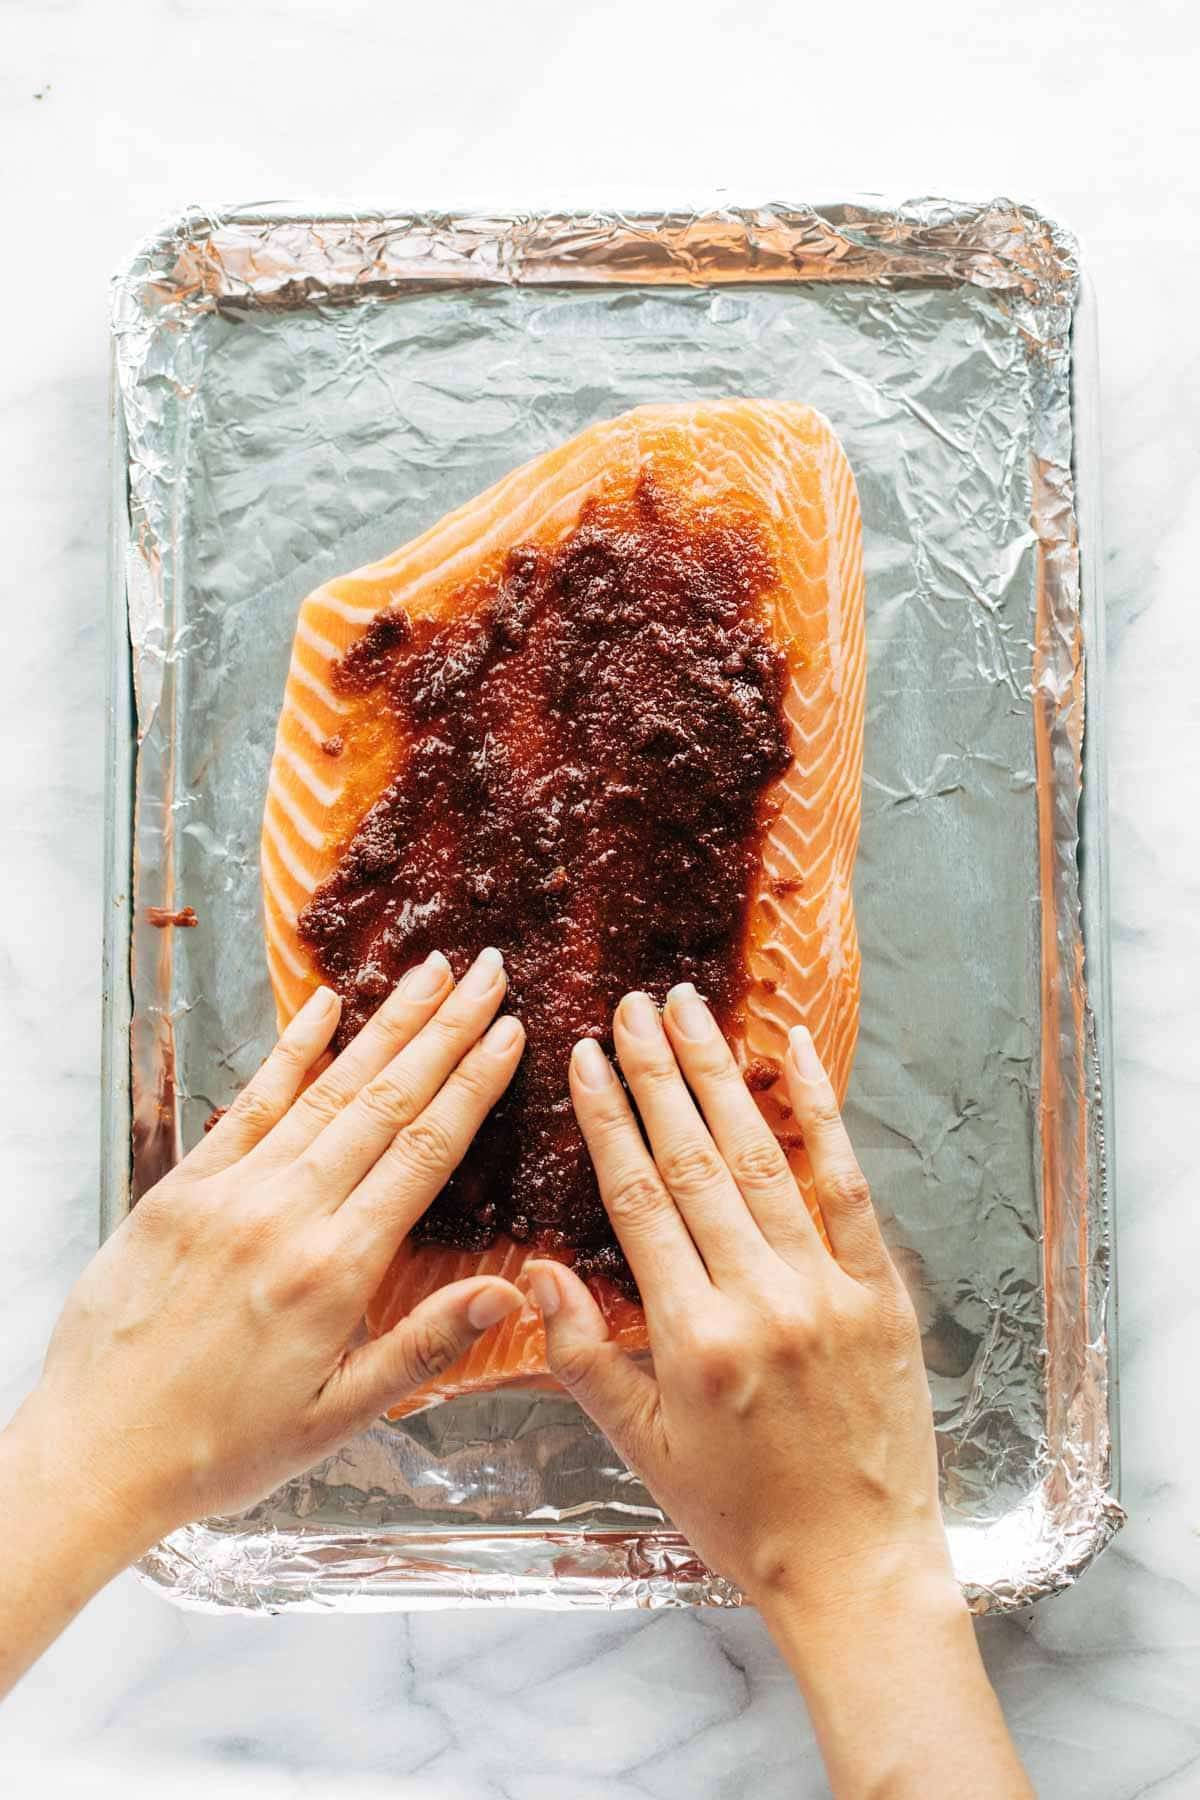 Adding rub to salmon on sheet pan.